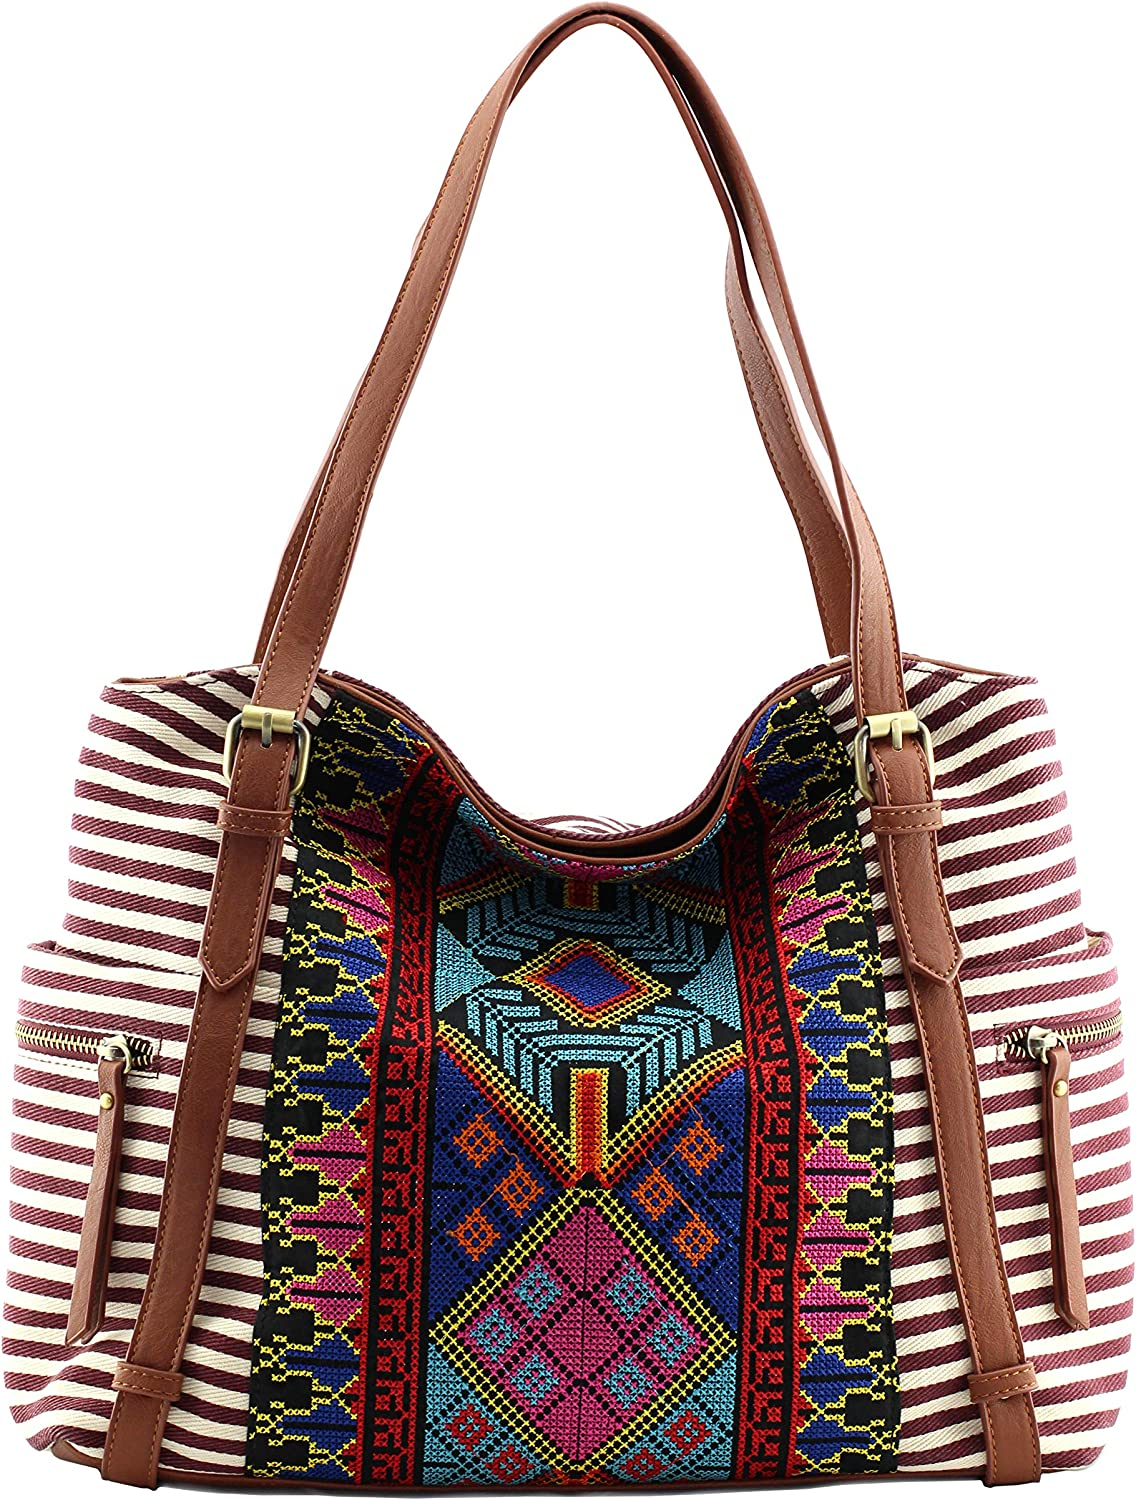 Boho striped canvas satchel bags with long shoulder strap